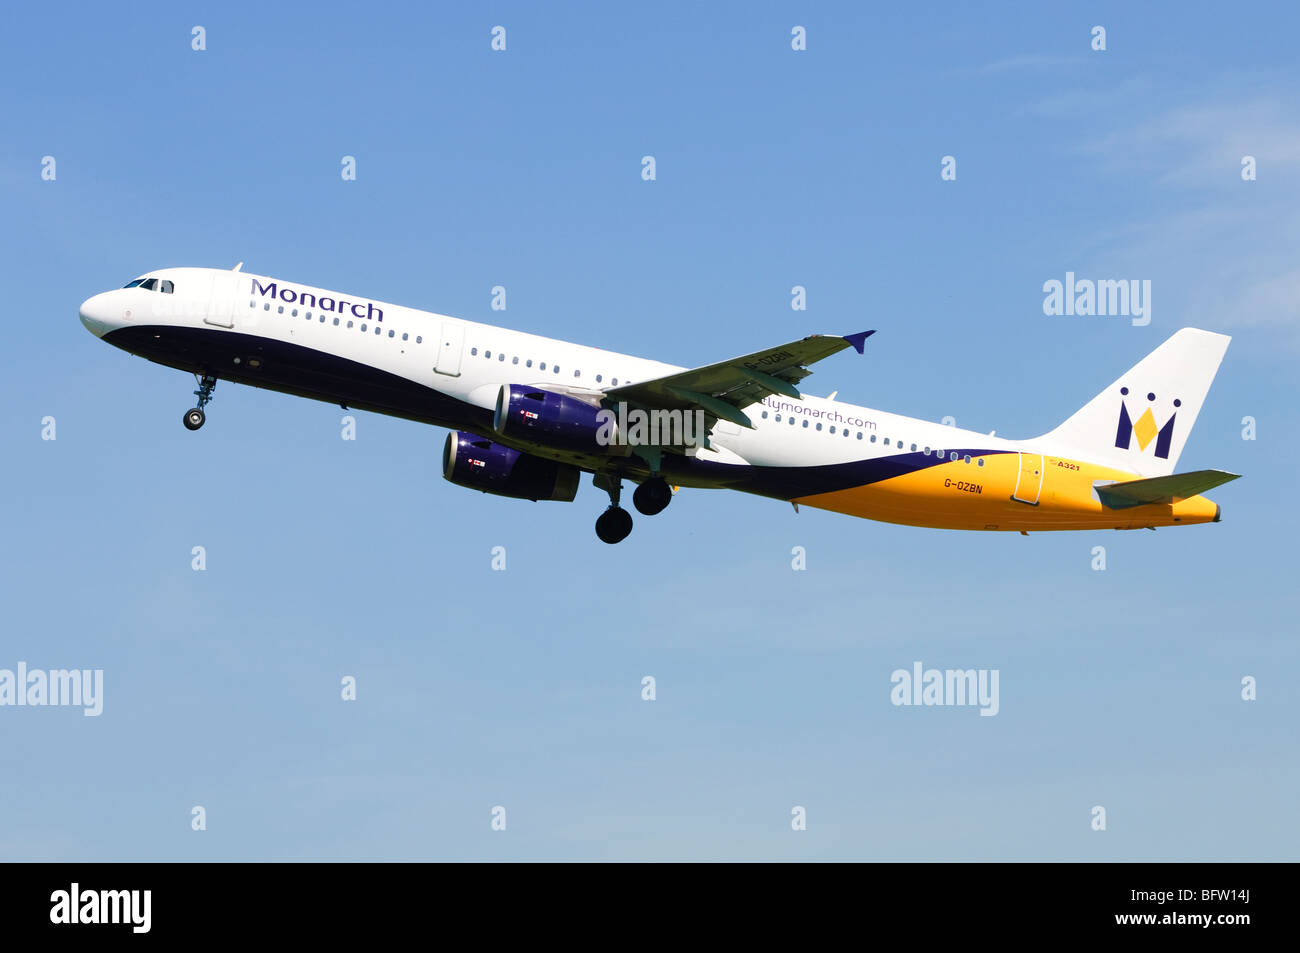 Airbus A321 operated by Monarch Airlines climbing out from take off at Birmingham Airport, UK. Stock Photo